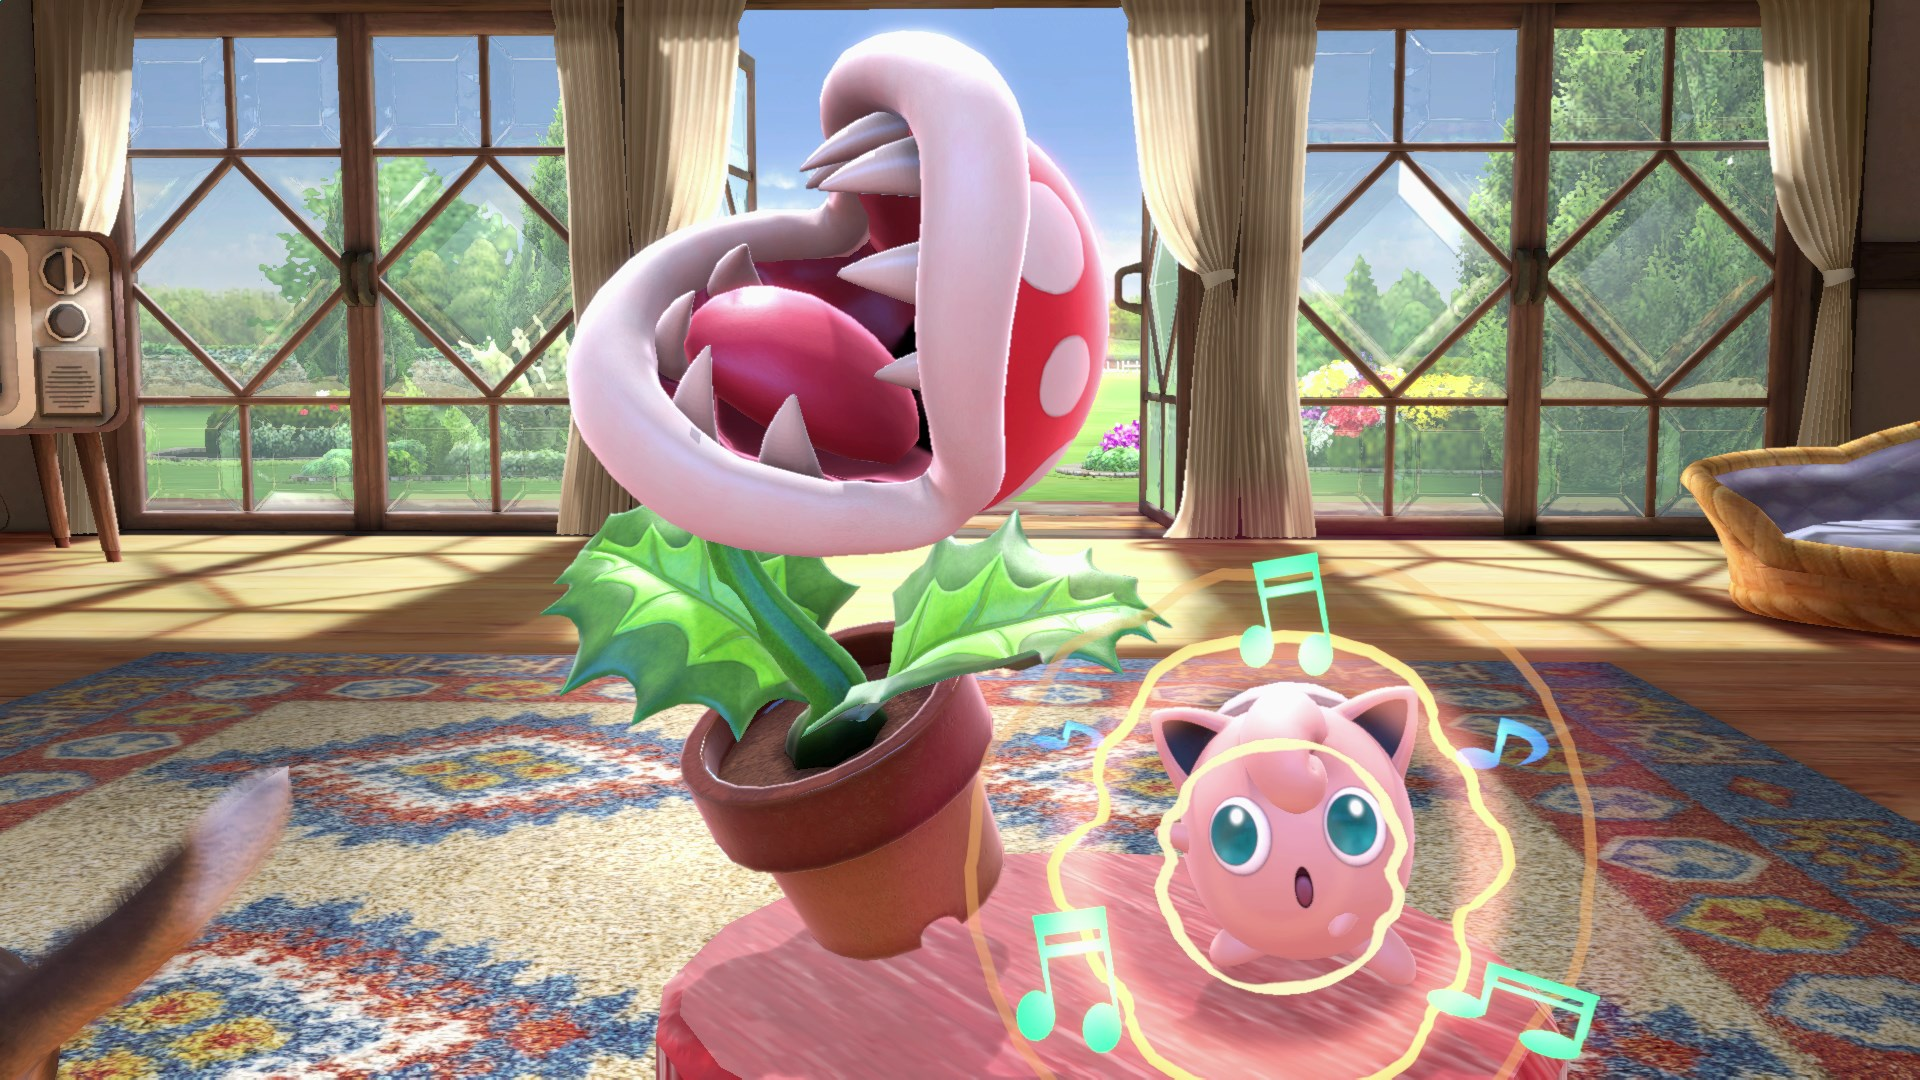 Top 10 Game Charts: Super Smash Bros. pummels the competition